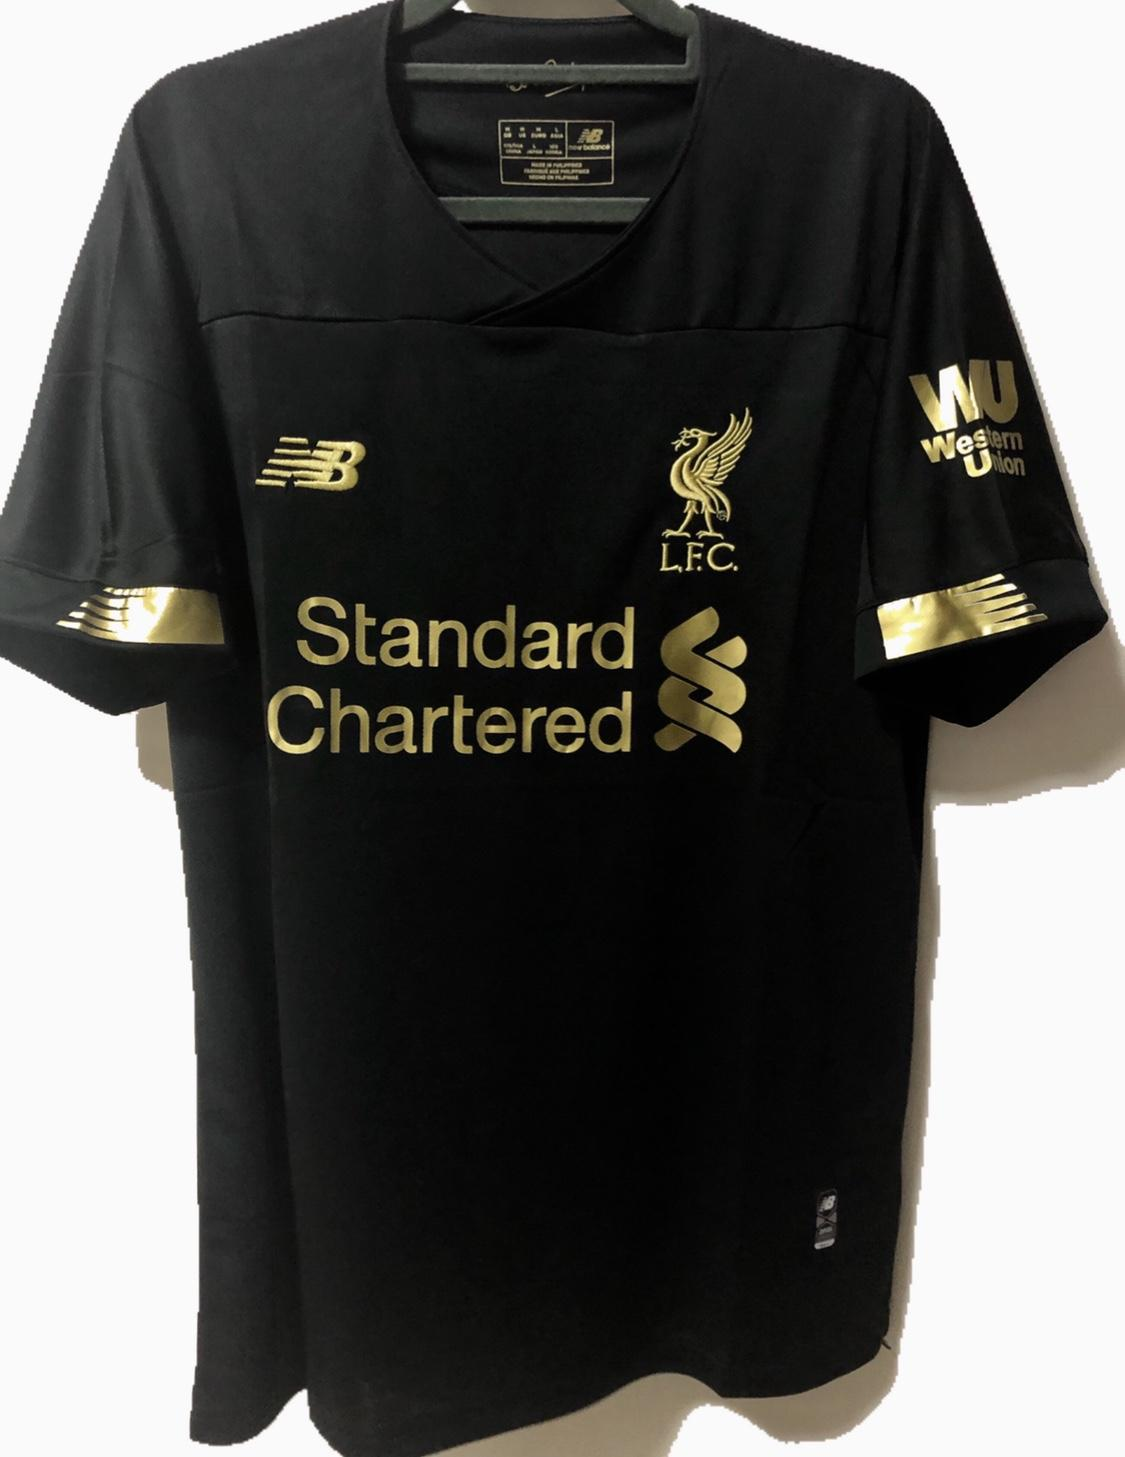 19/20 Liverpool Goalkeeper Football Jersey By My_kit1.